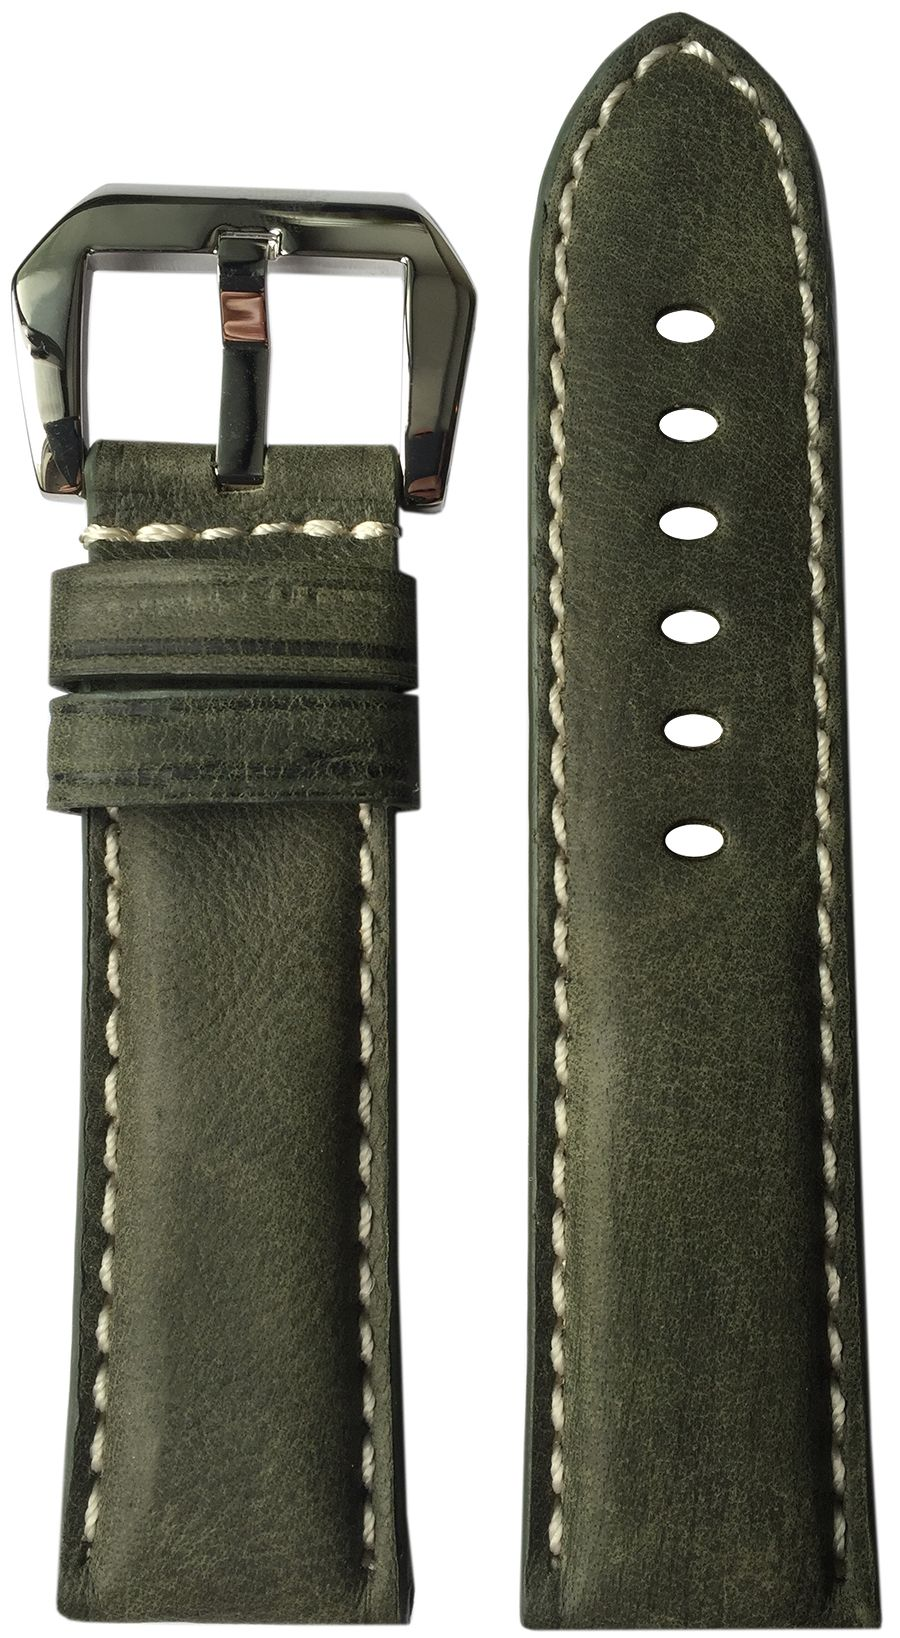 NEW ITEM-24mm XL RIOS1931 for Panatime Olive Genuine Vintage Leather Watch Strap with White Stitching for Panerai 24/22 124/92